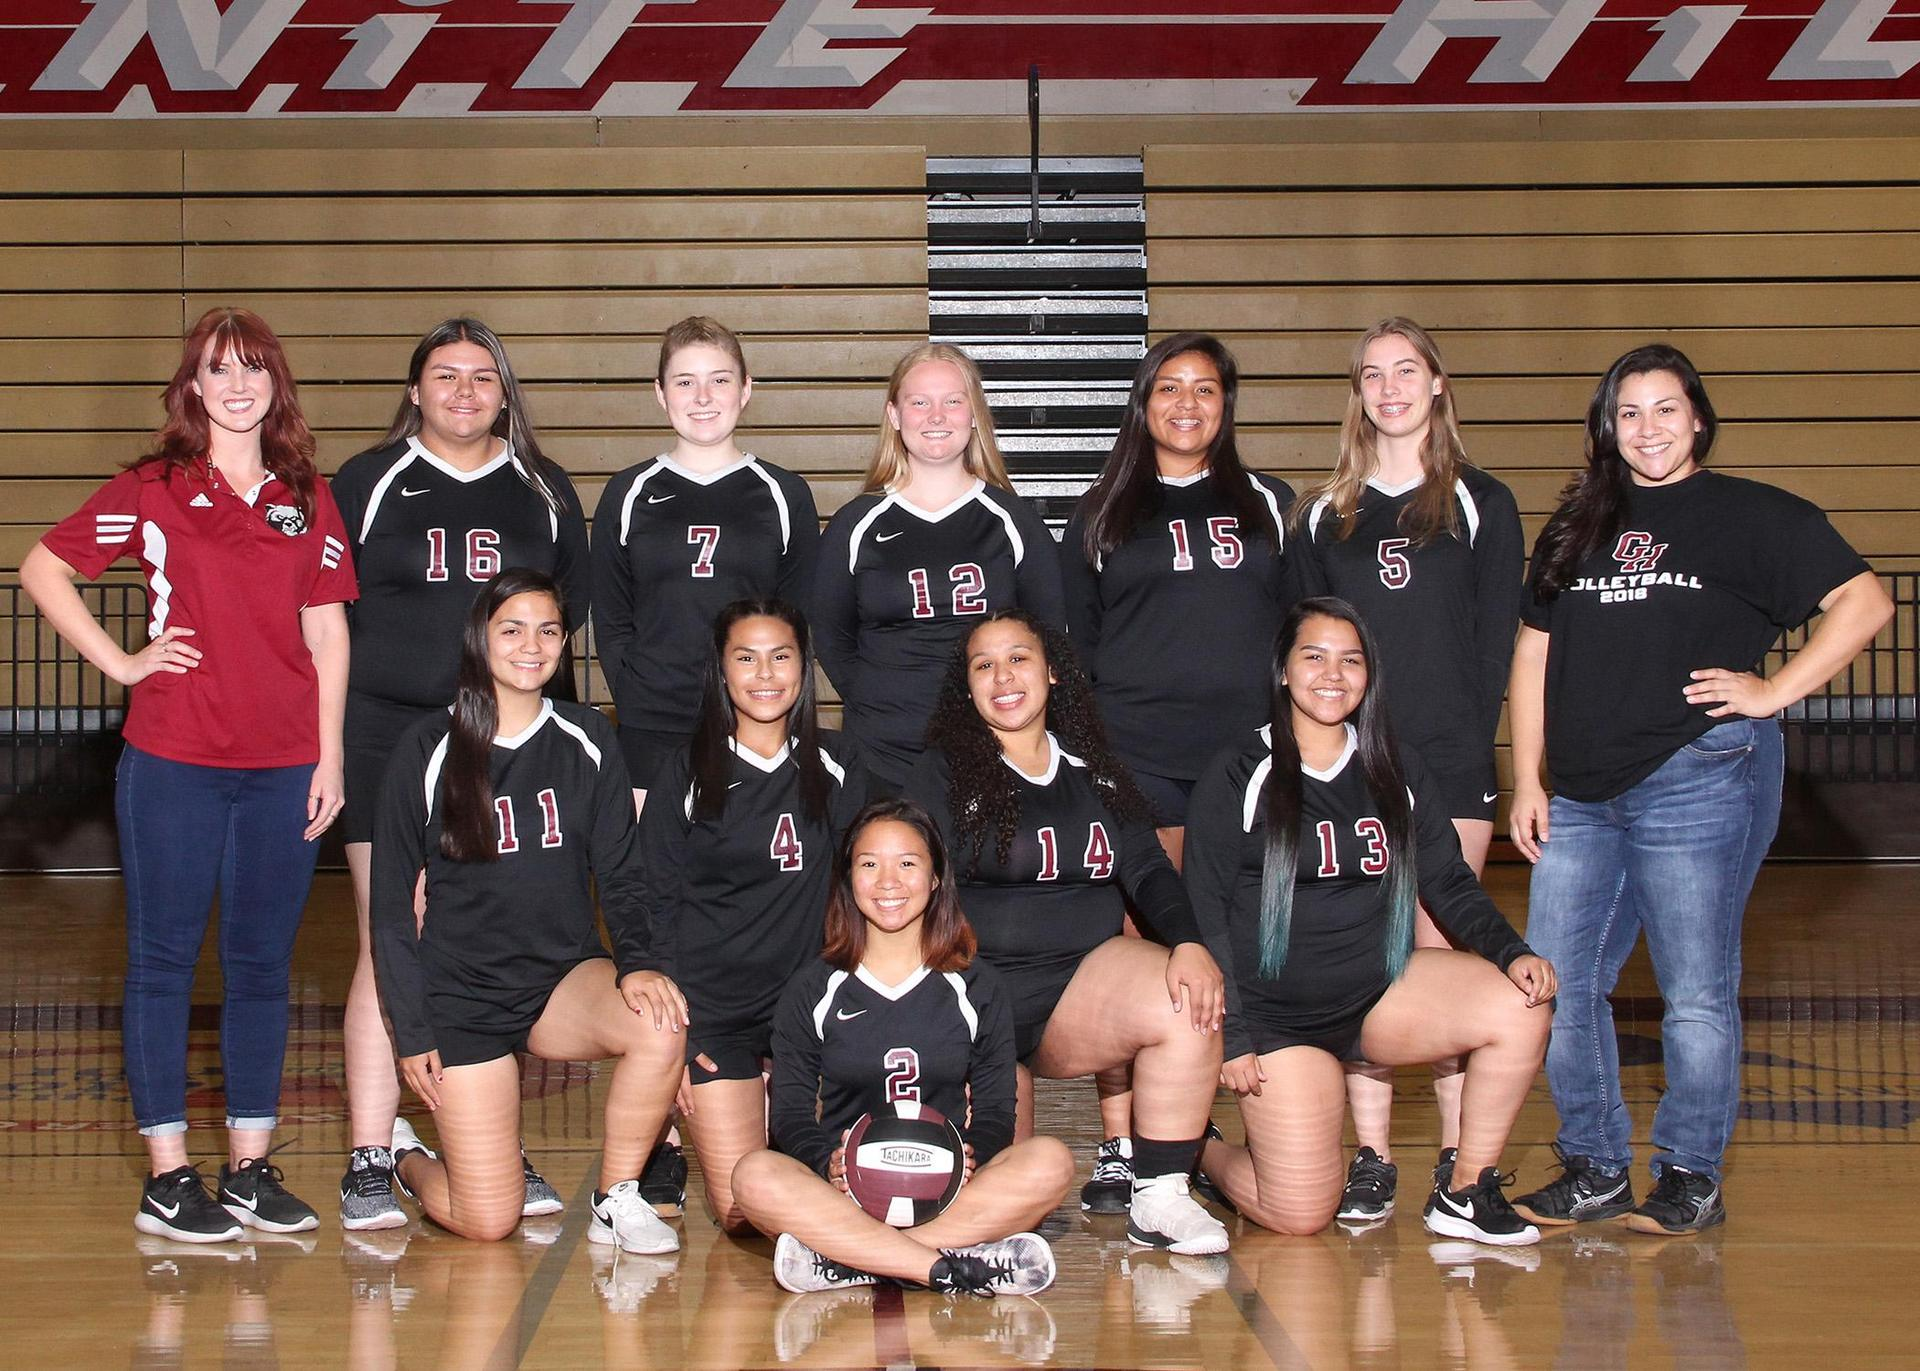 JV Grizzly Volleyball 2018